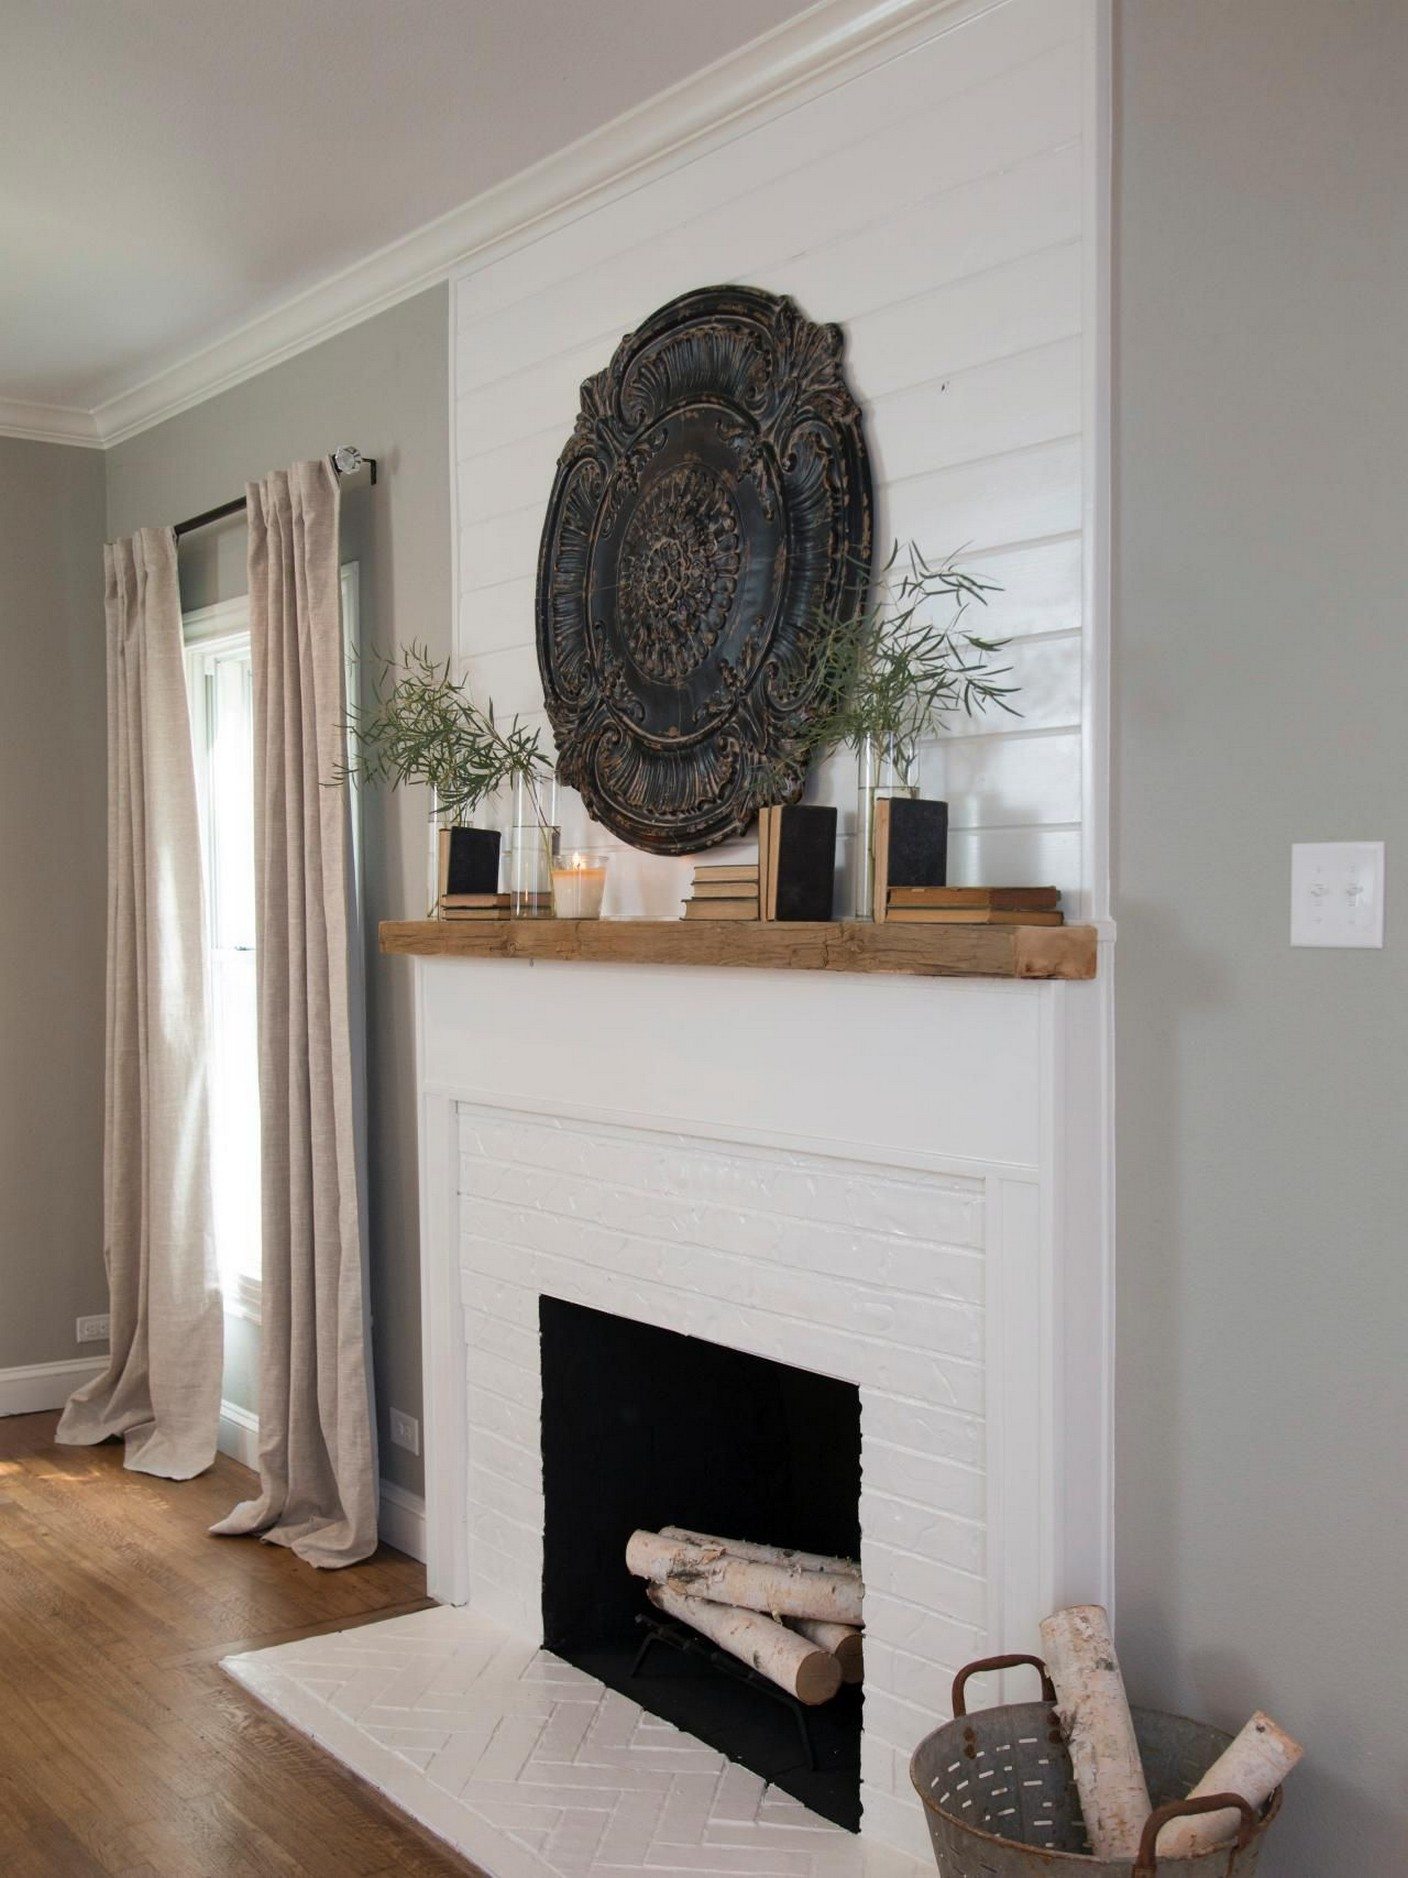 76 Stone Fireplaces The Hearth Is The Heart of The Home 69